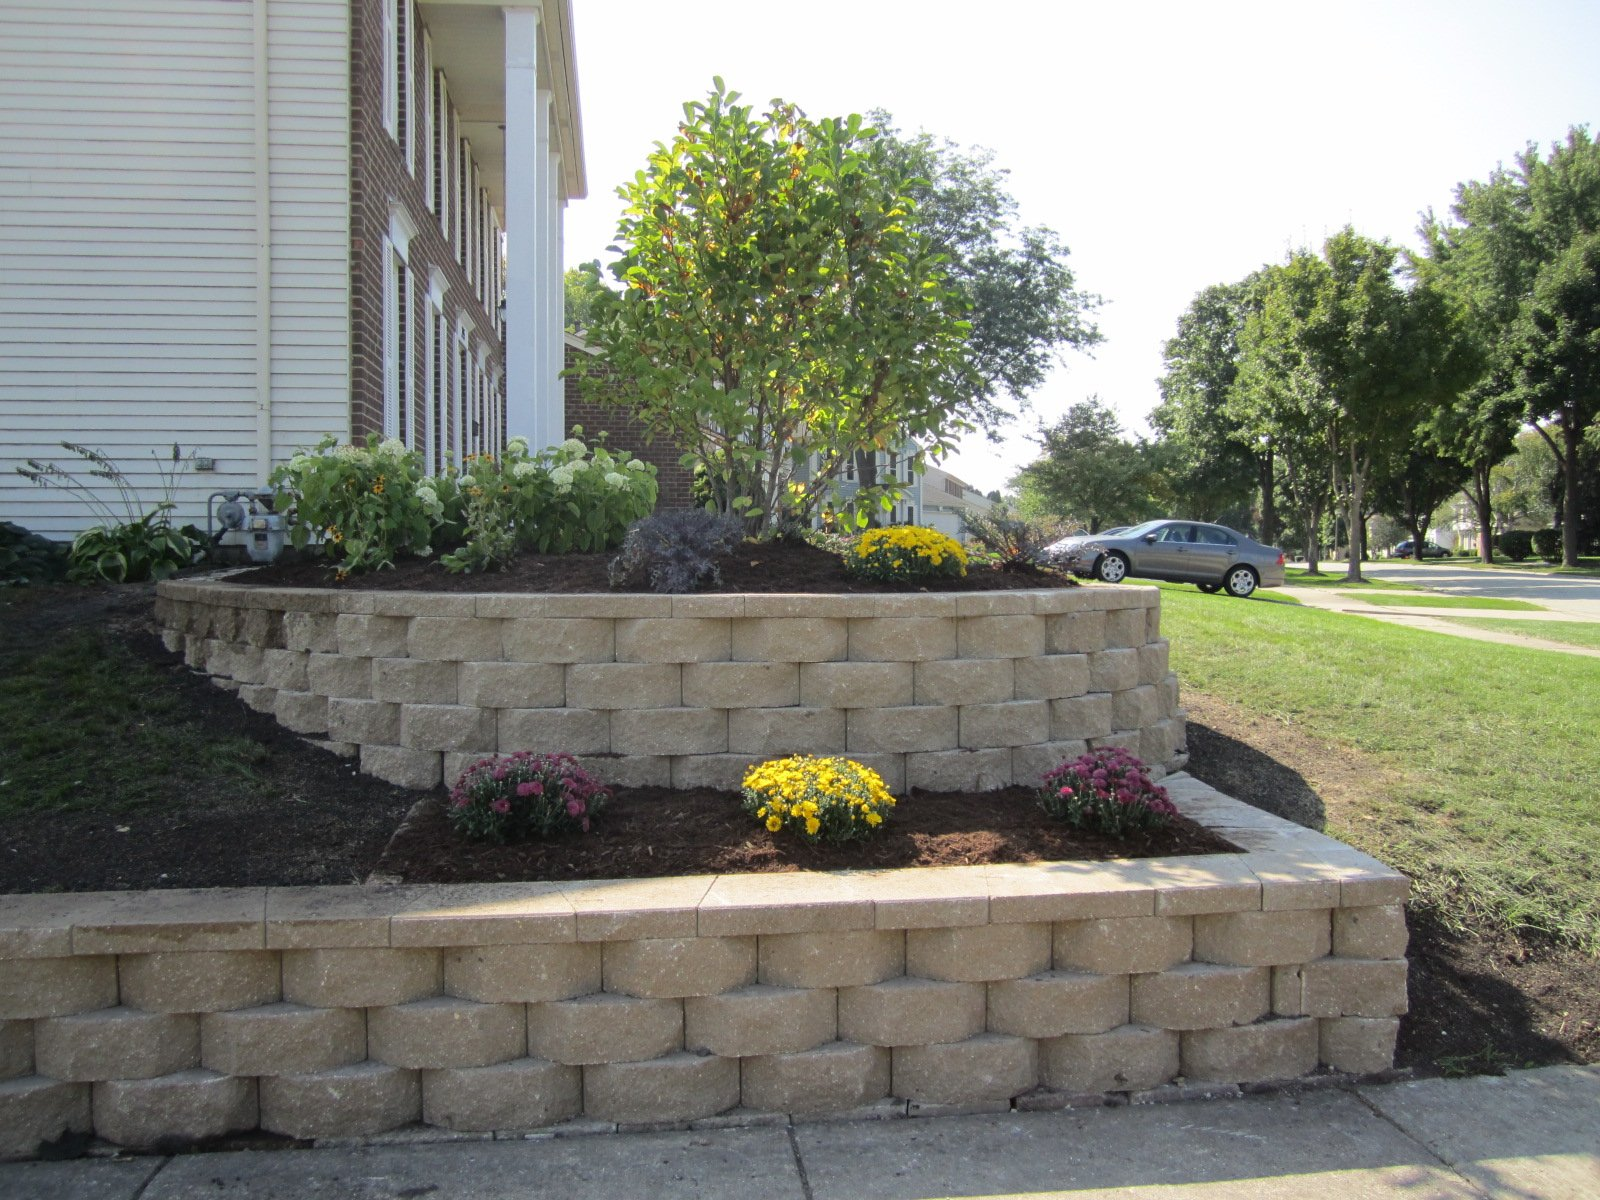 Anns Landscaping image 1